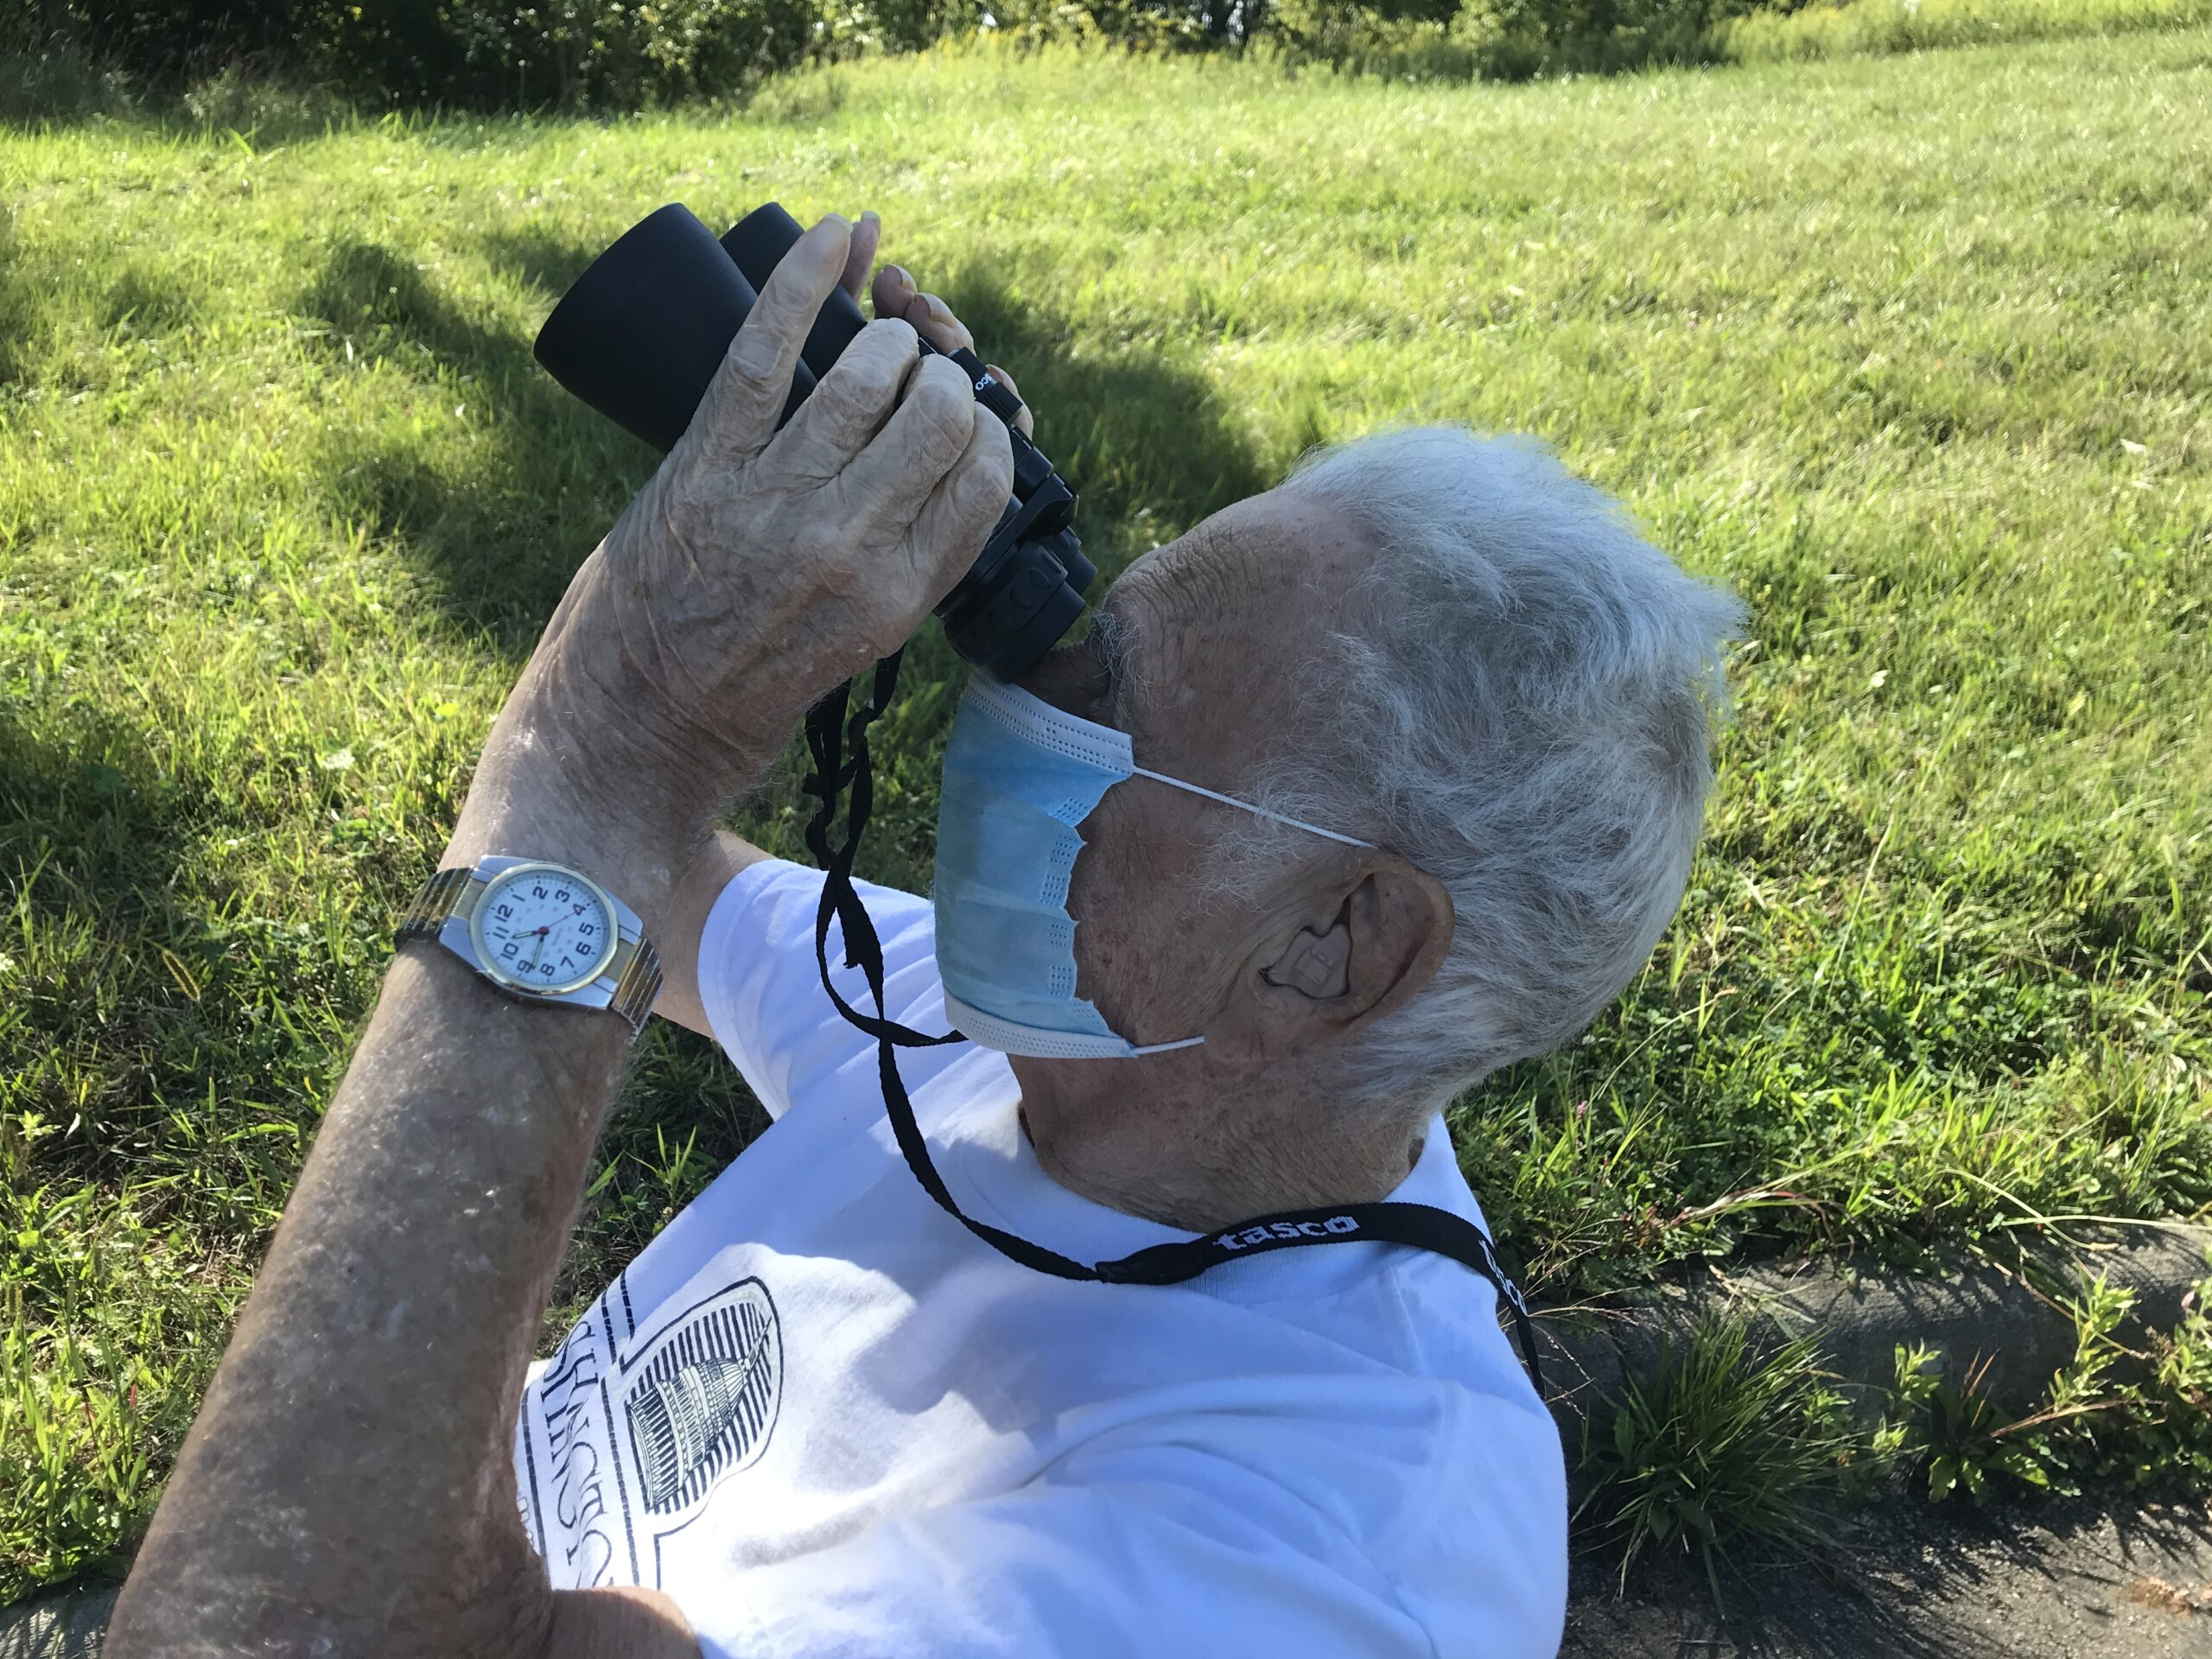 MANSFIELD OHIO Bob, doing some bird watching on our nature walk